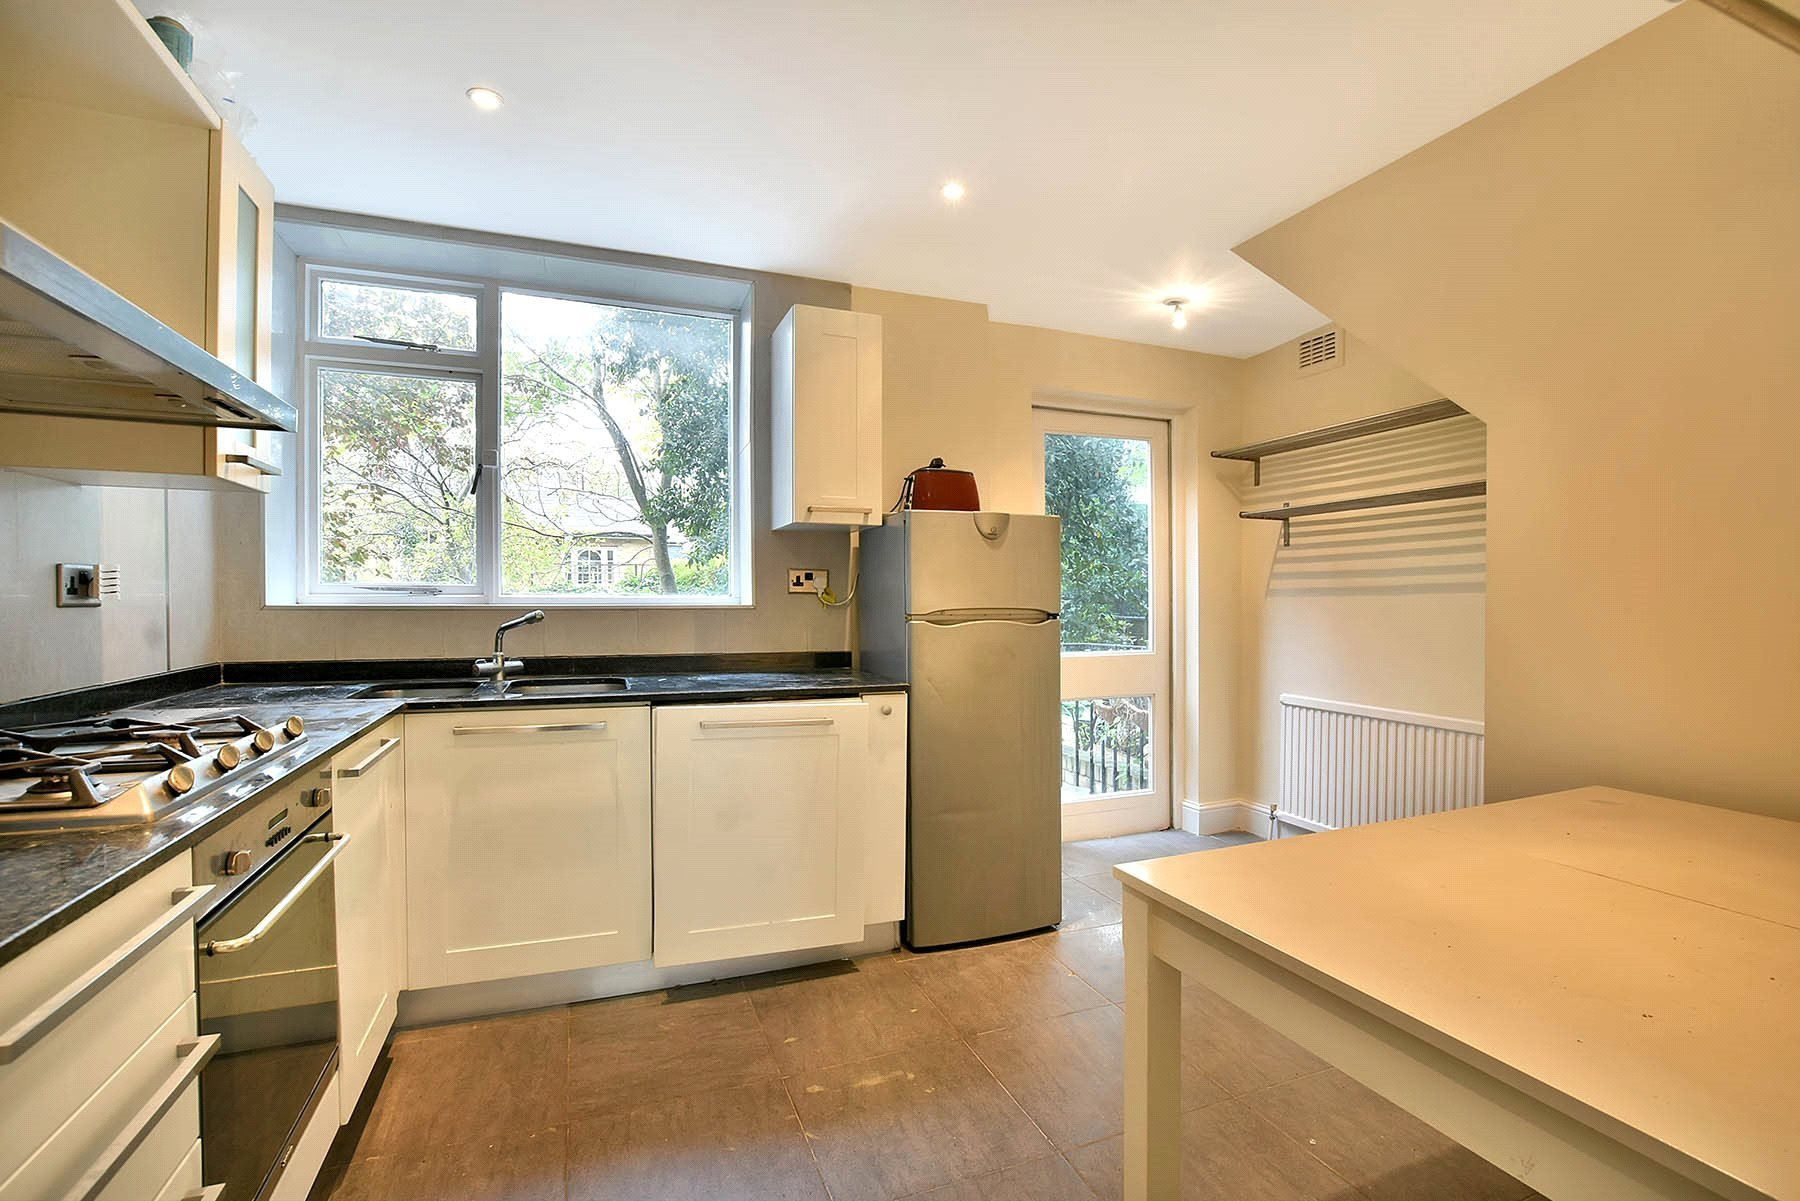 Best 2 Bedroom Apartment To Rent In Camden Road London Nw1 With Pictures Original 1024 x 768